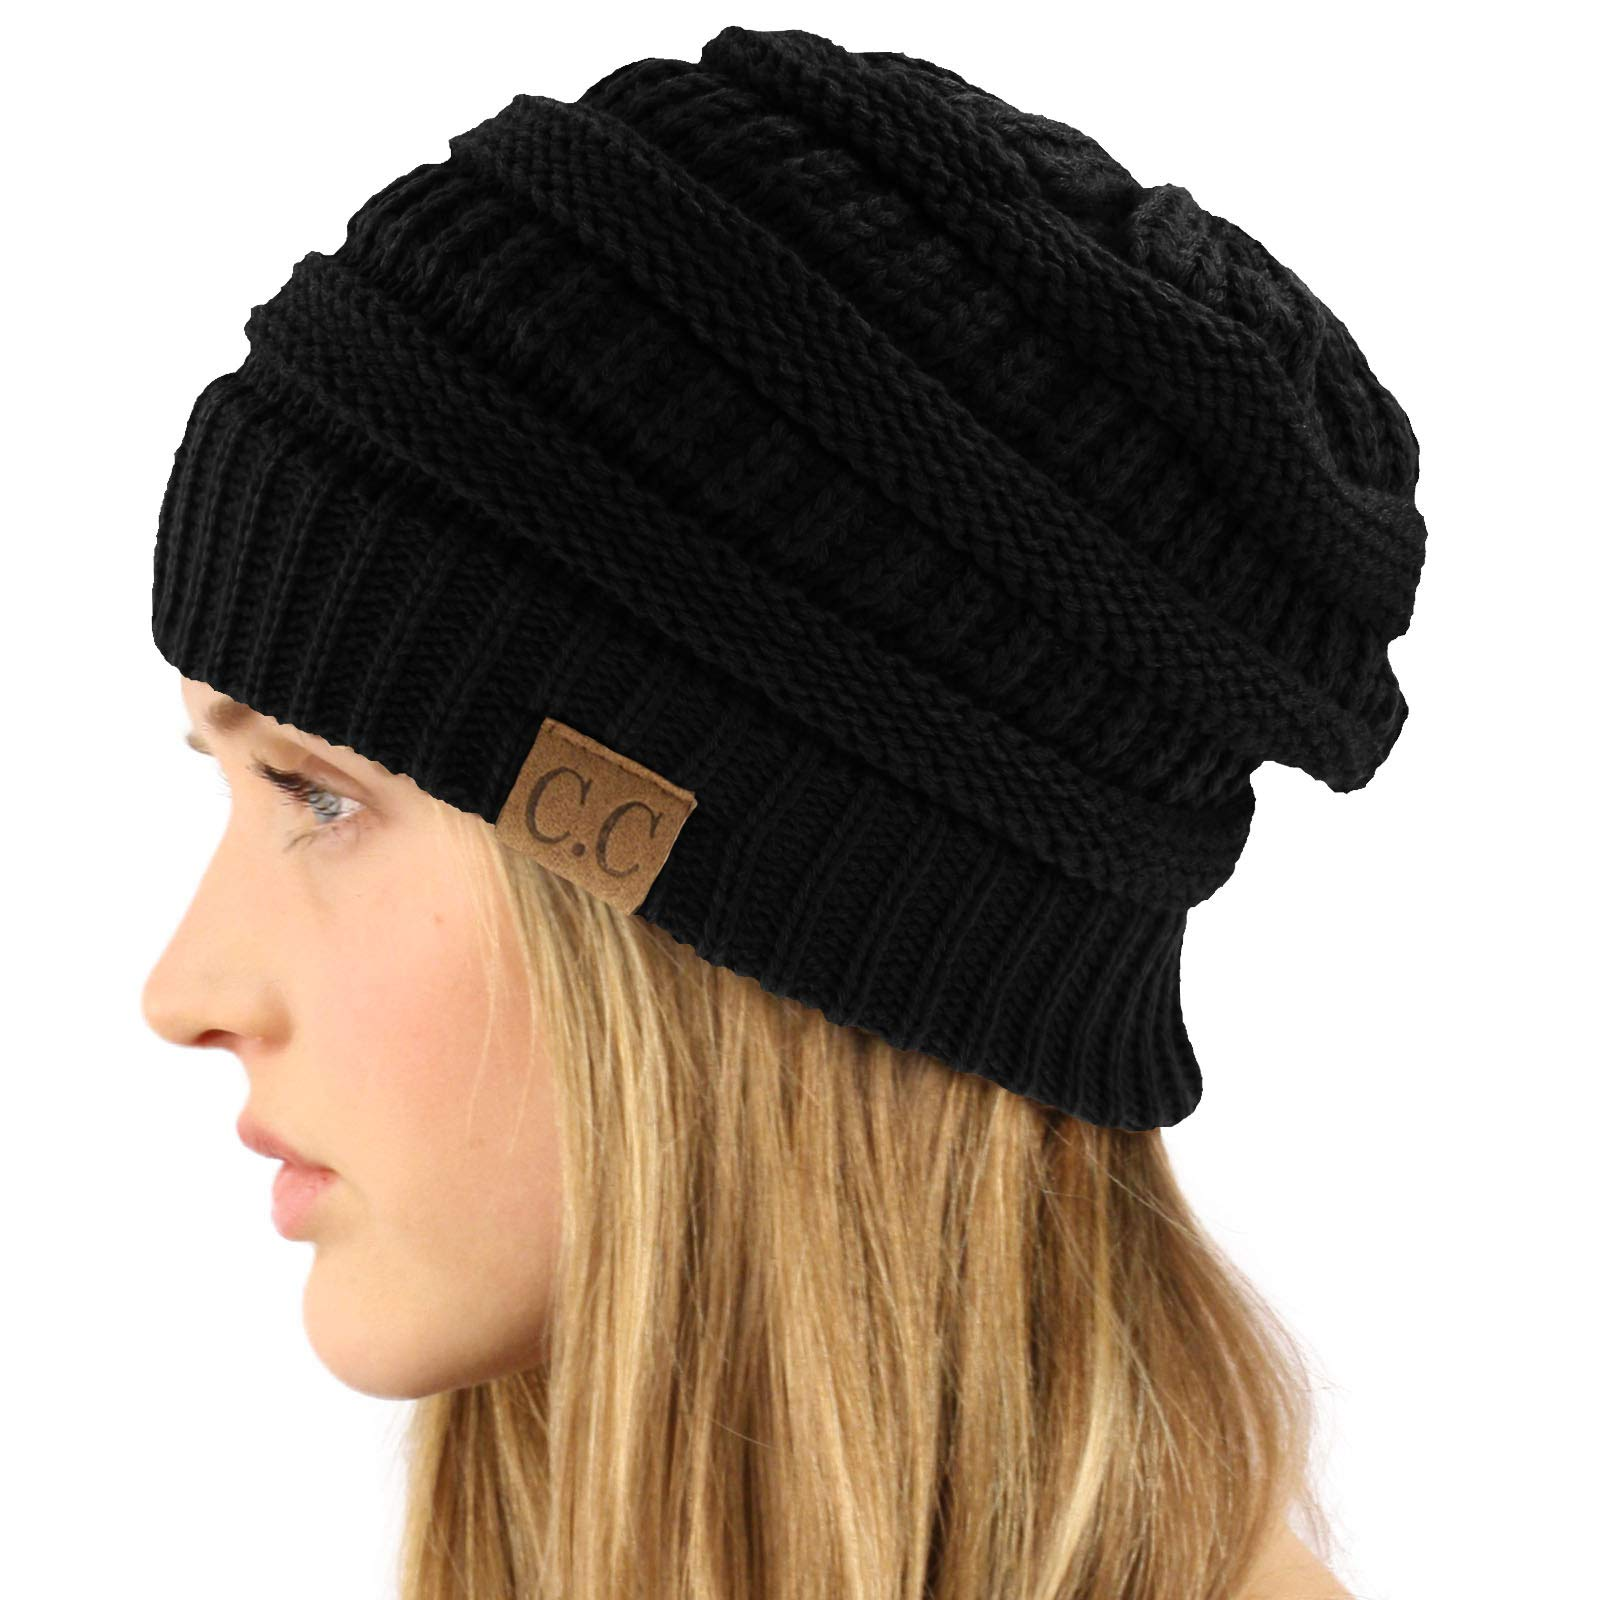 CC Winter Trendy Soft Cable Knit Stretchy Warm Ribbed Beanie Skully Ski Hat Cap Solid Black